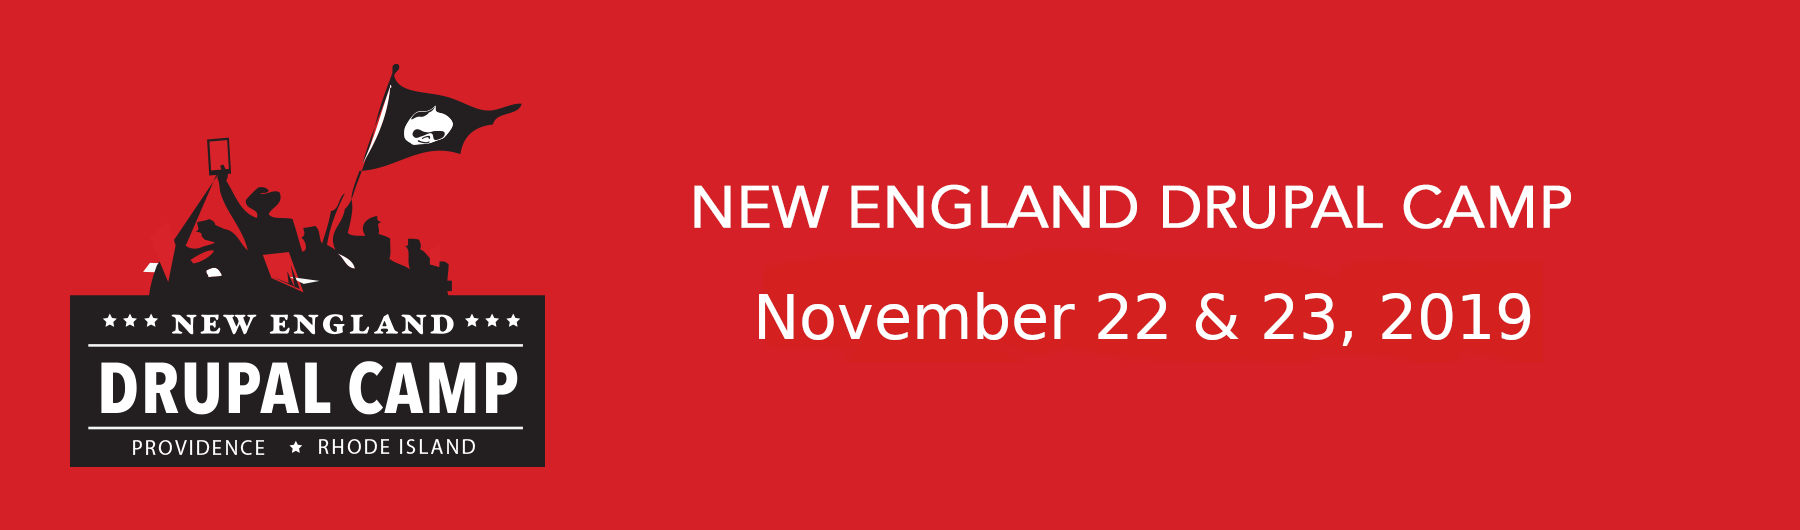 New England Drupal Camp Training 2019